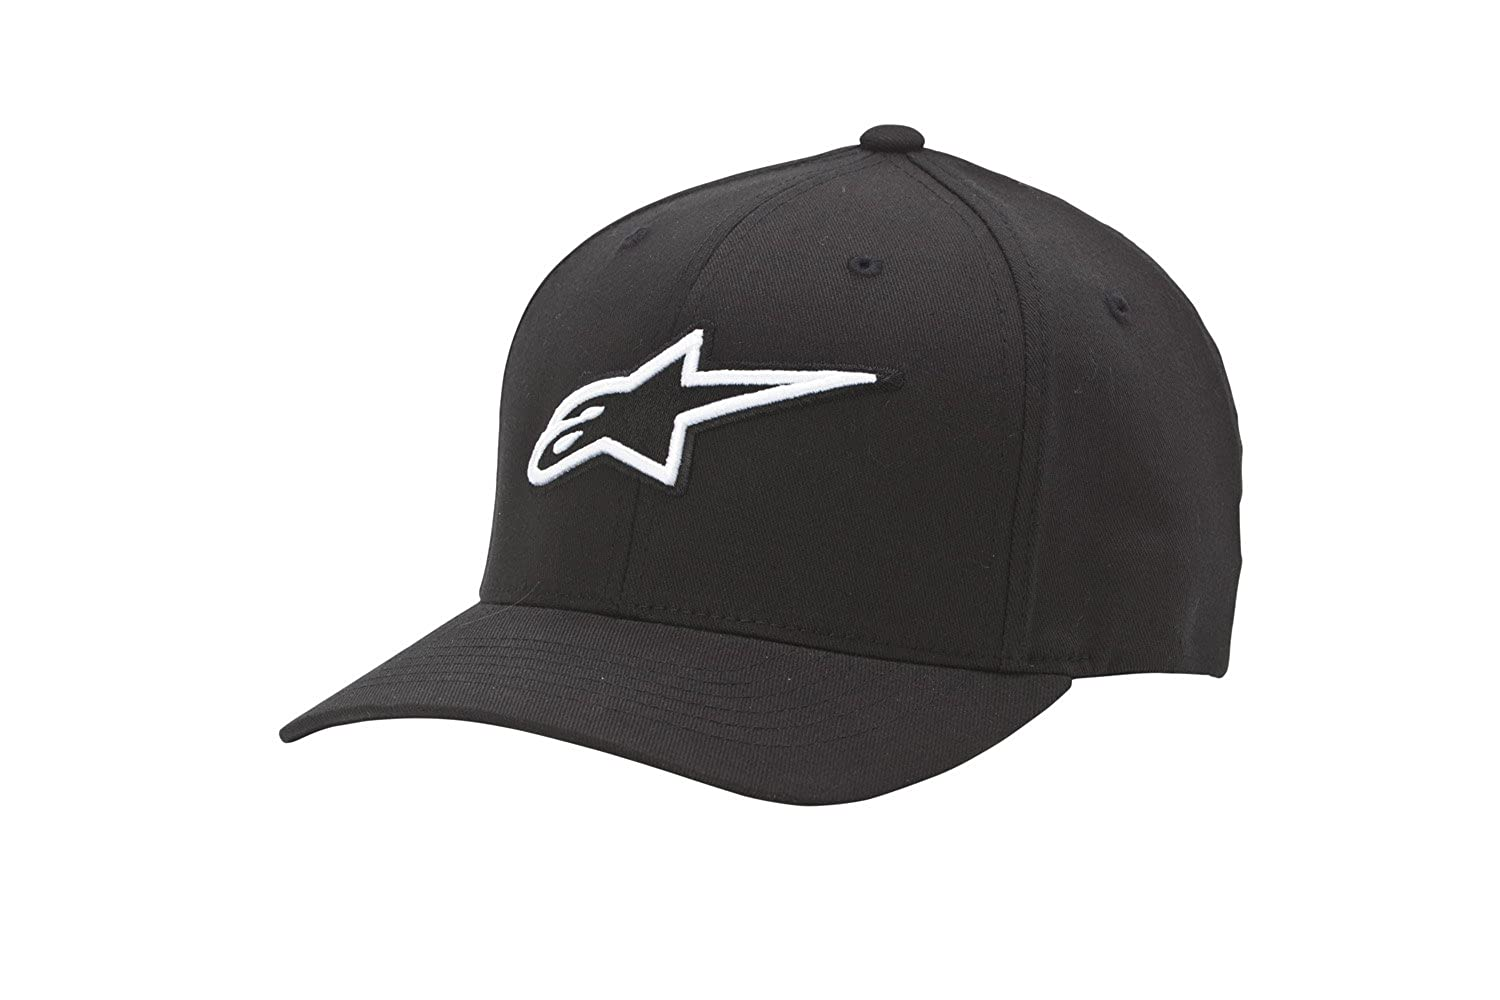 Amazon.com  Alpinestars Men s Curved Bill Structured Crown Flex Back 3D  Embroidered Logo Flexfit Hat  Clothing 59be1d6e59b